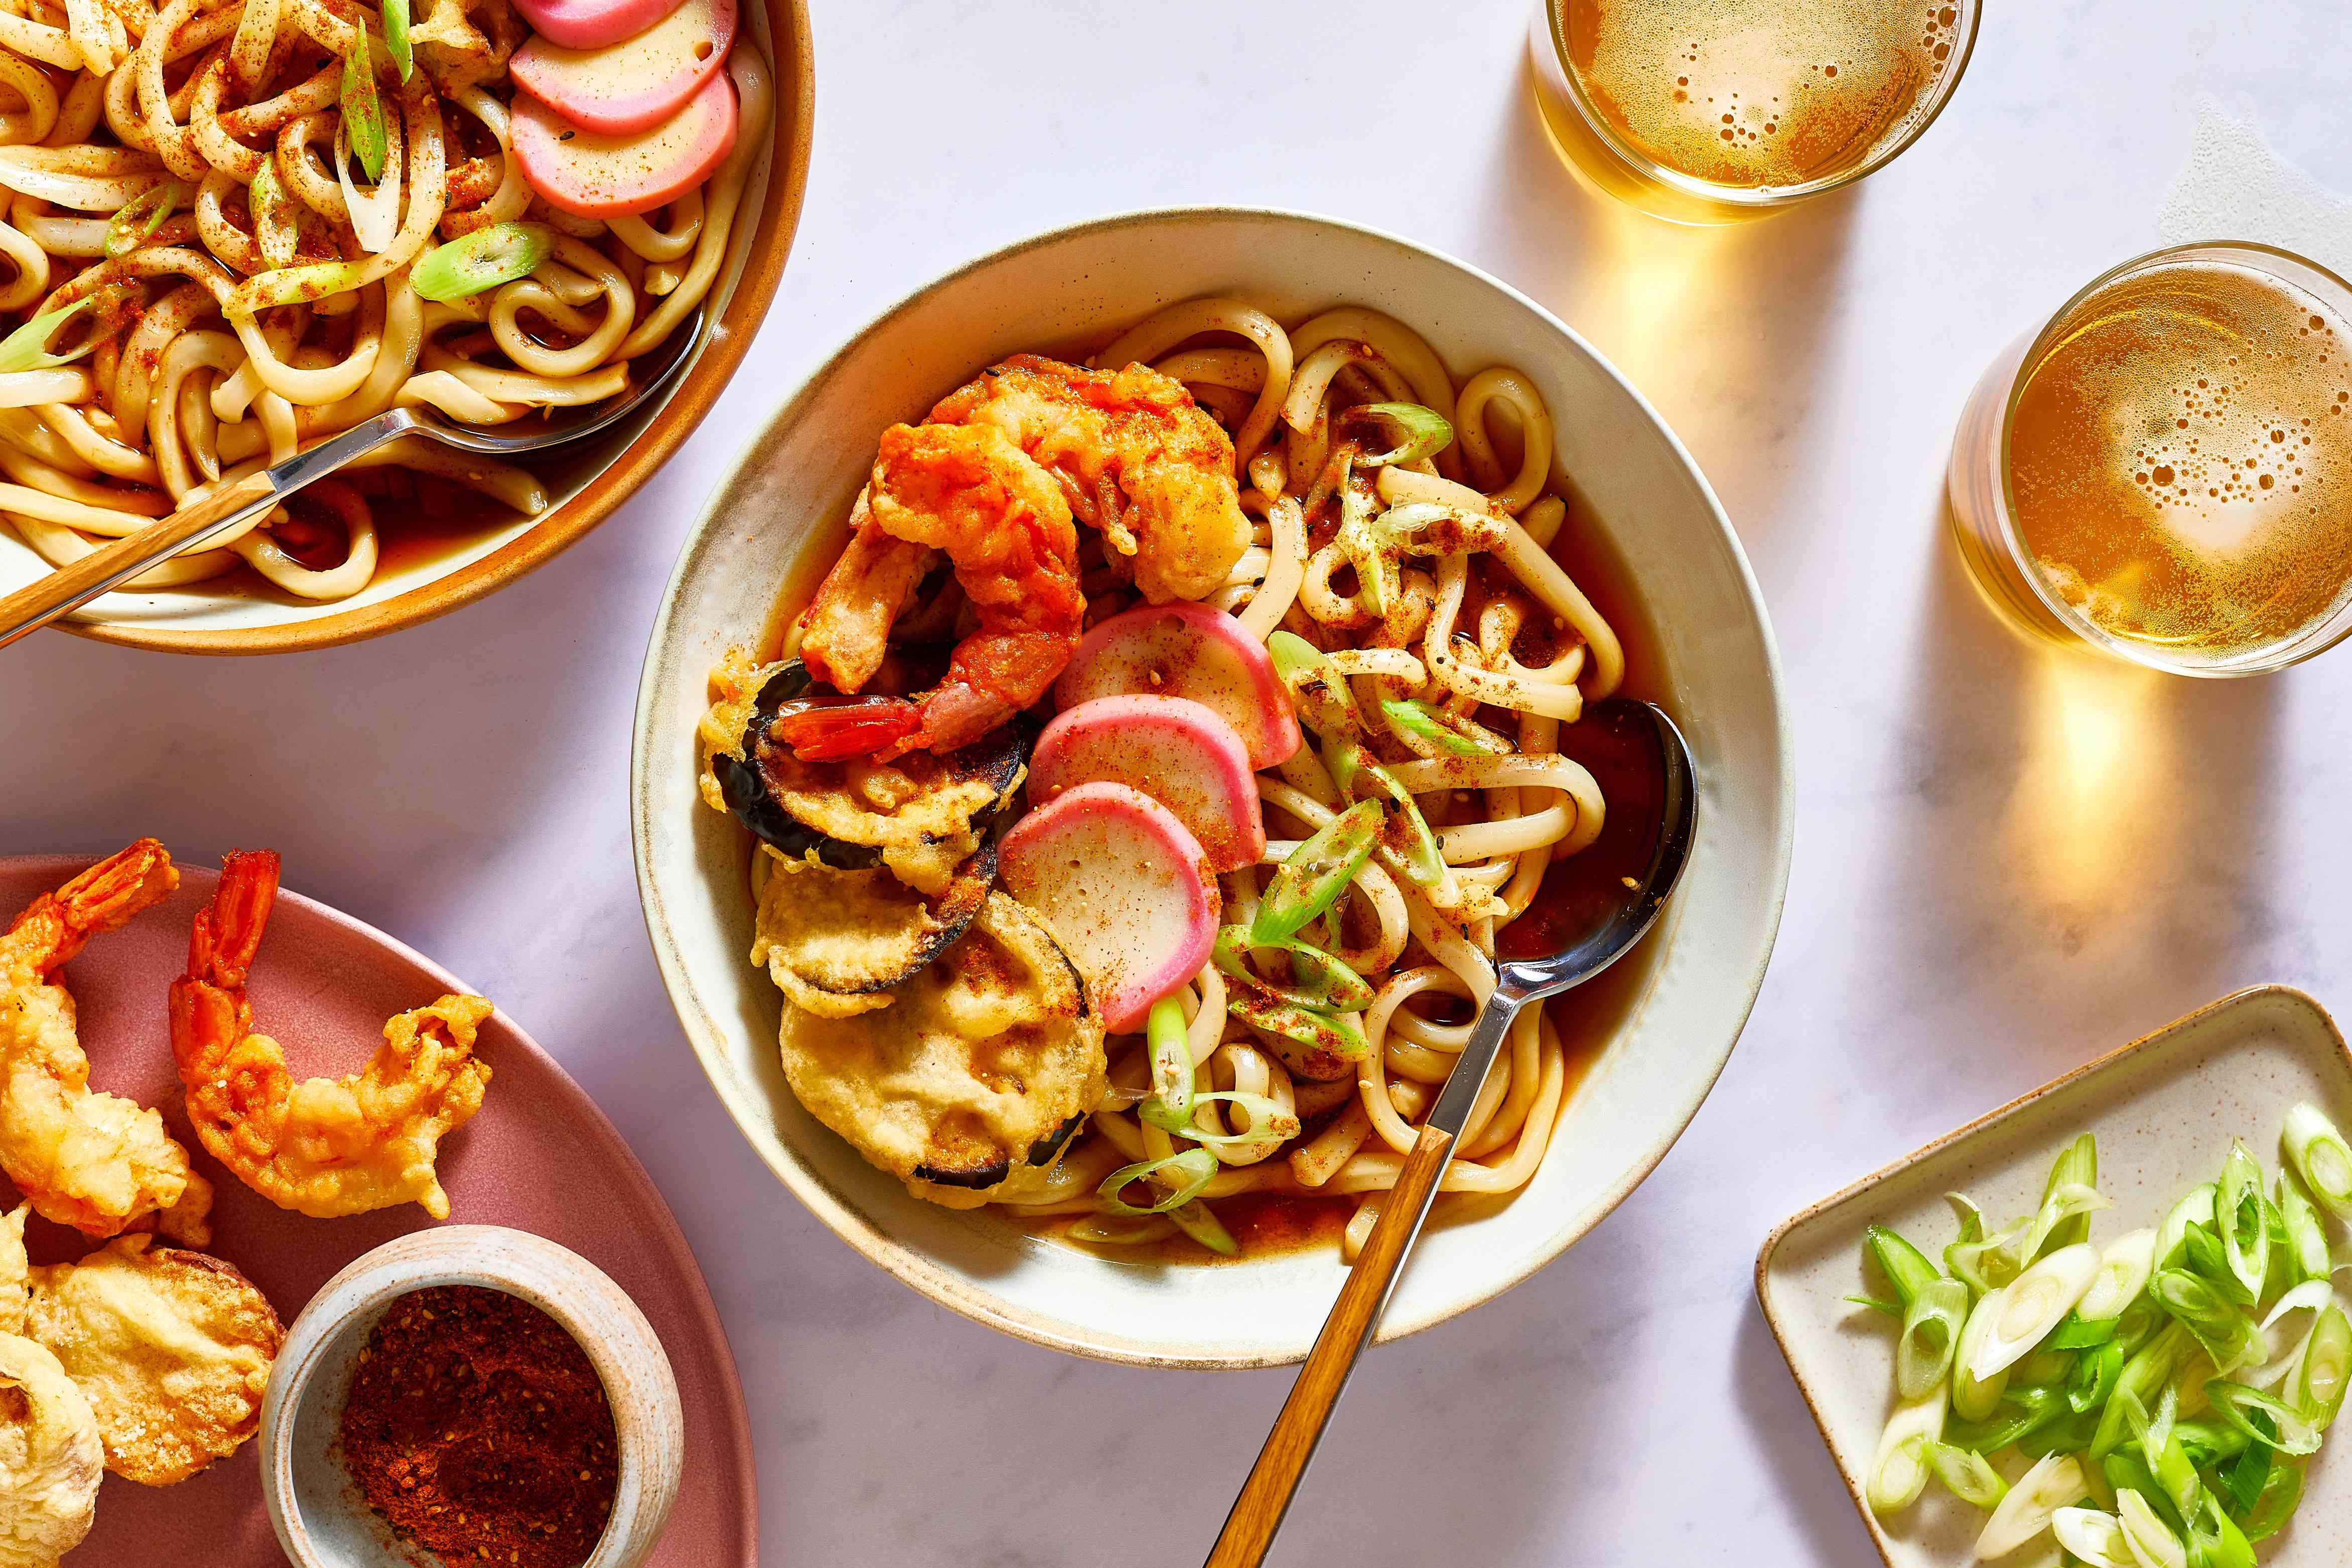 Tempura Udon served in a bowl